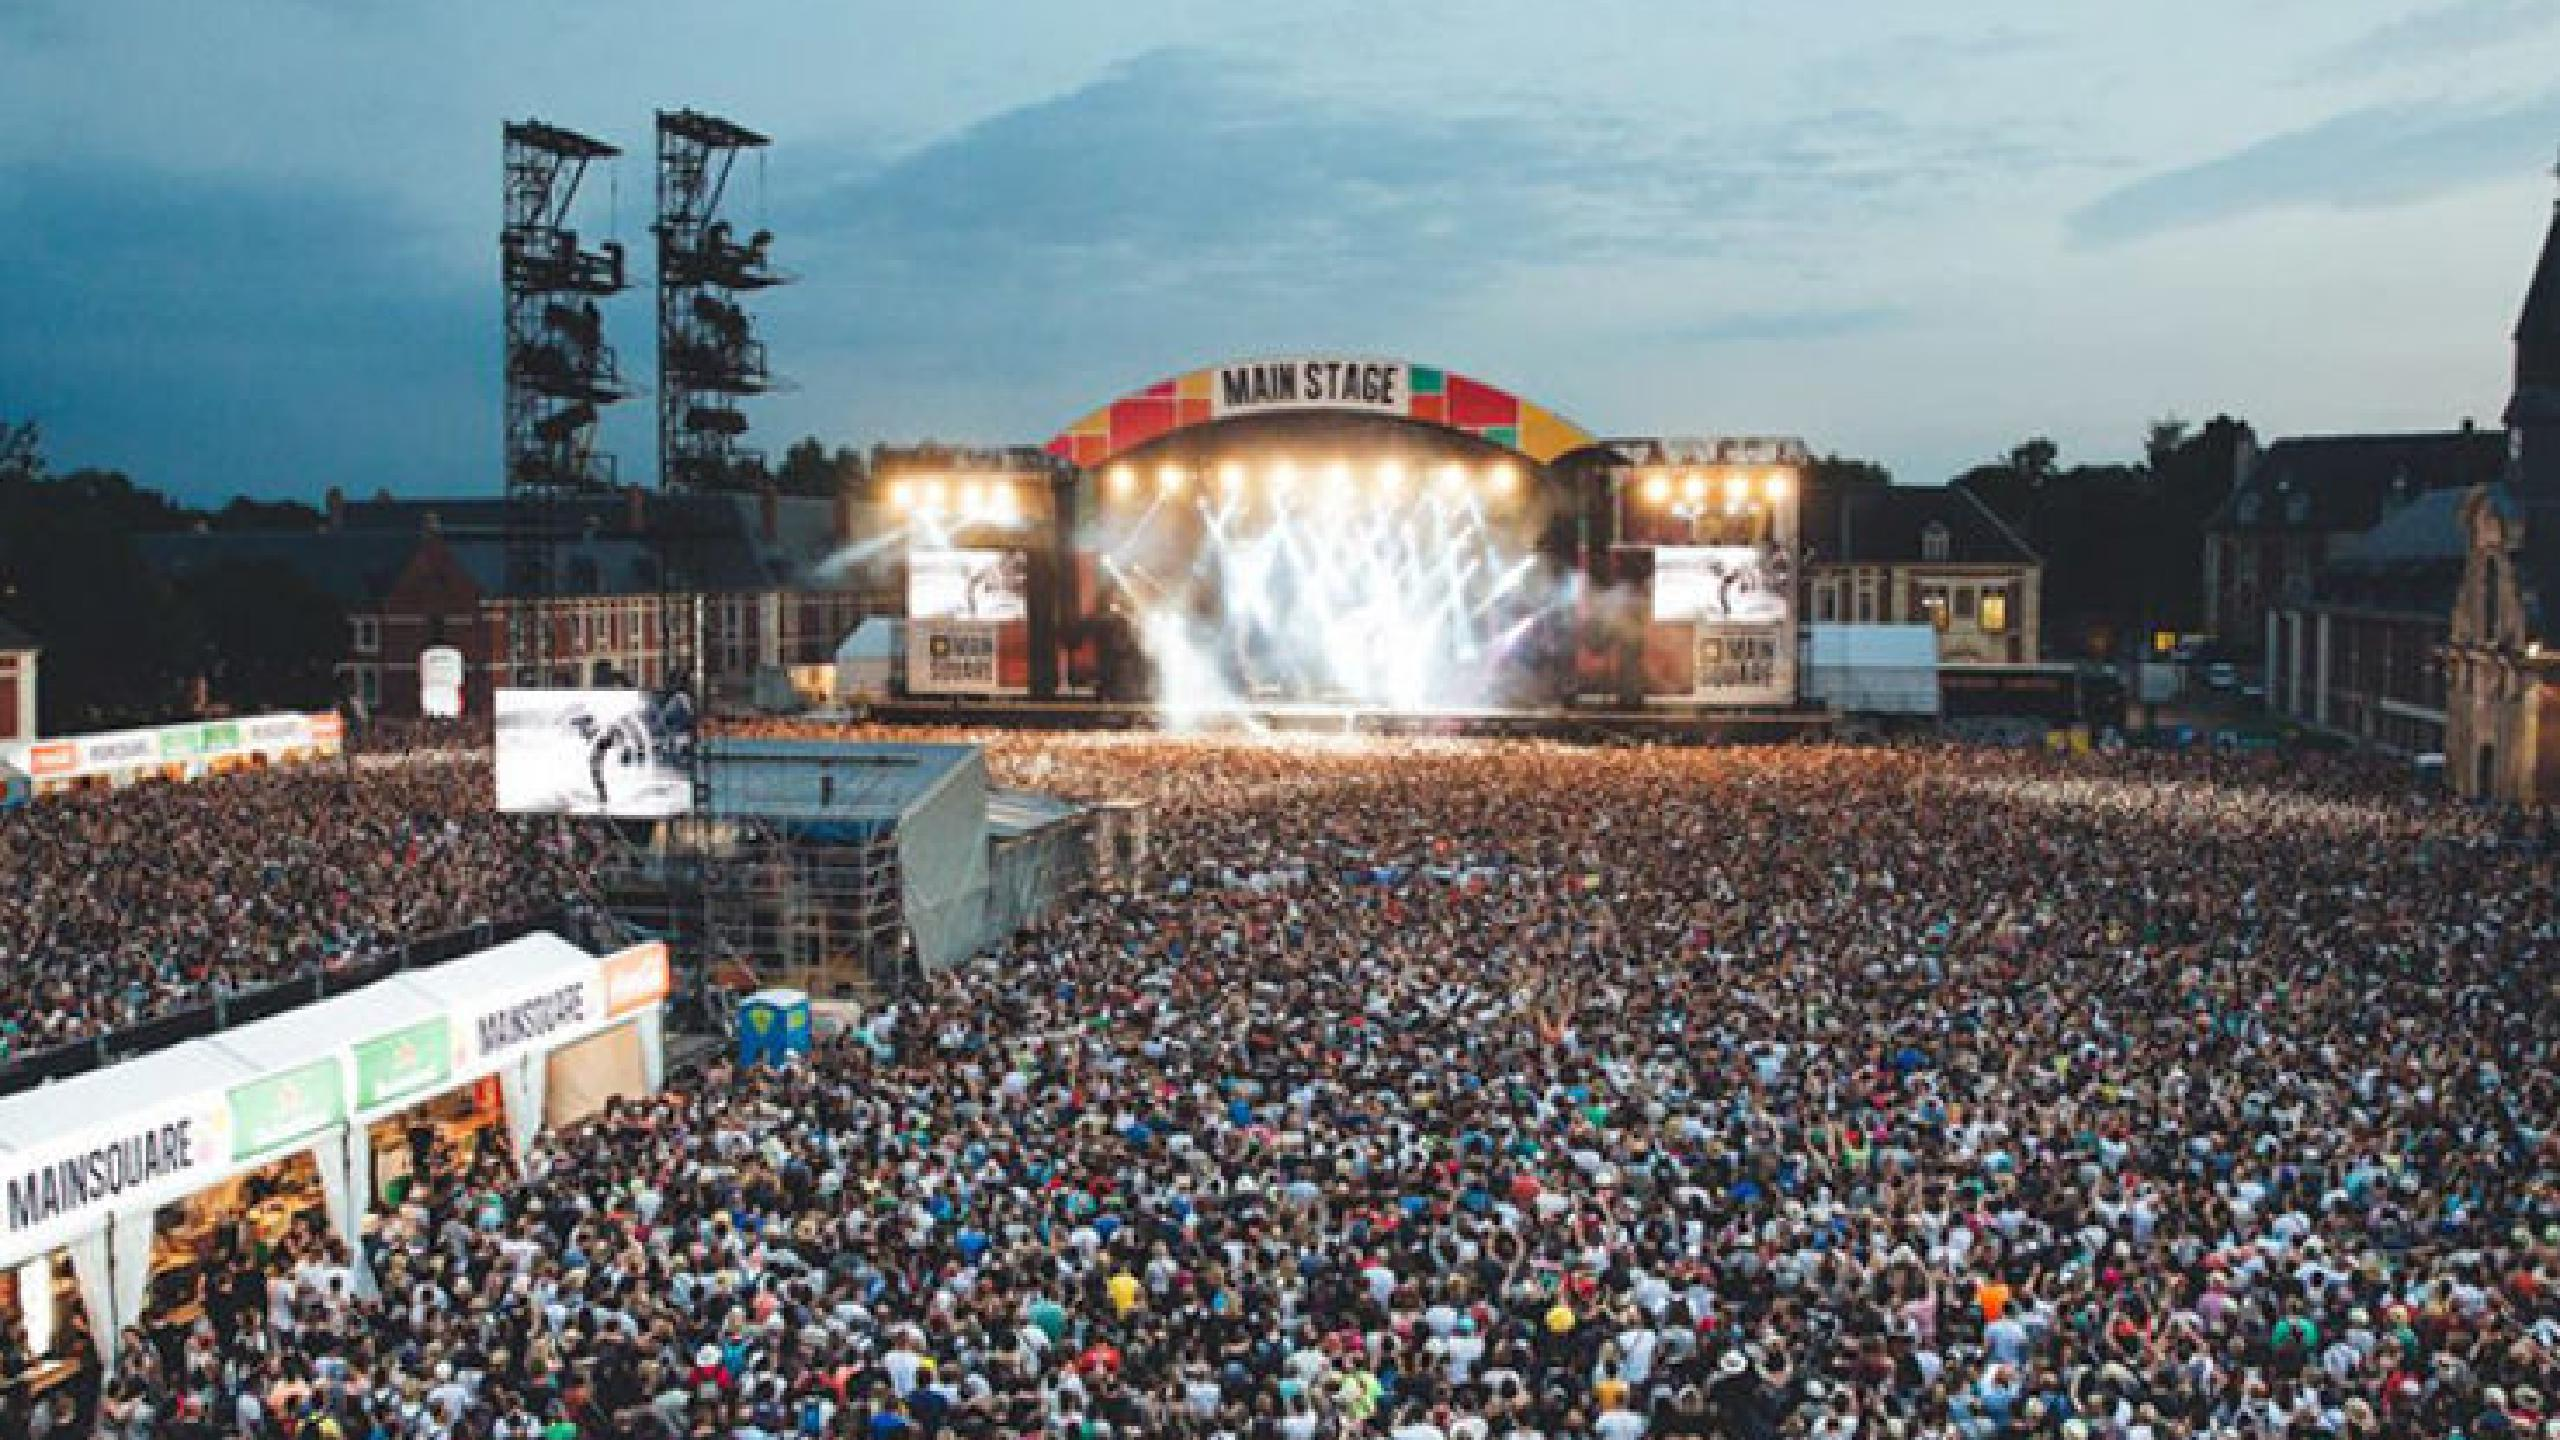 Pilgrimage Festival 2020.Festival Main Square 2020 Tickets Lineup Bands For